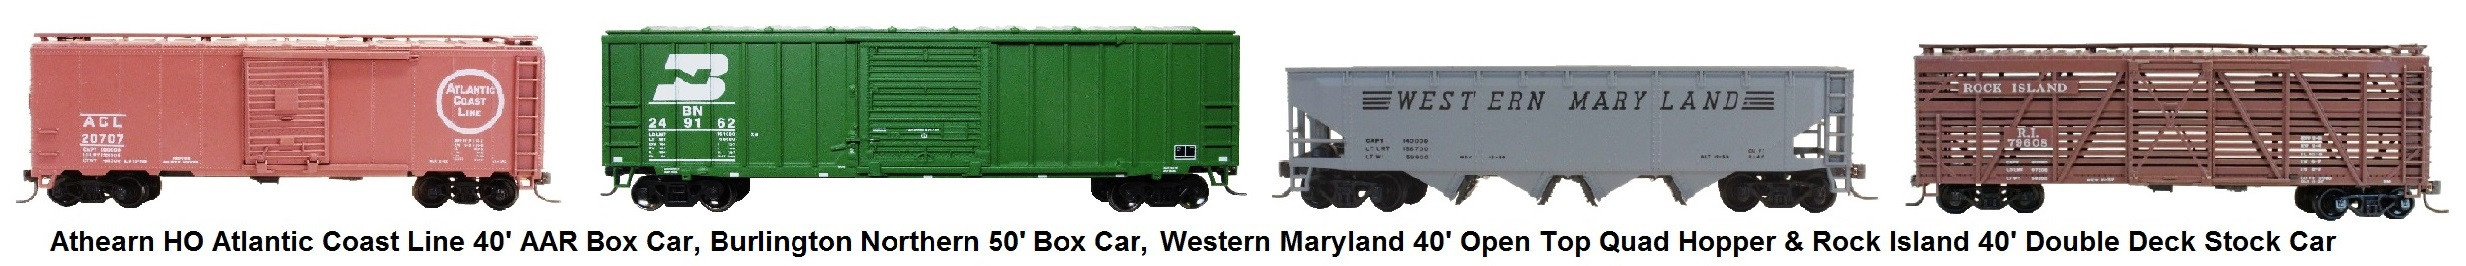 Athearn HO scale freight cars - Atlantic Coast Line 40' AAR Box Car, H.J. Heinz Pickle Car, Western Matyland 40' Open Top Quad Hopper and Rock Island Double Deck Stock Car